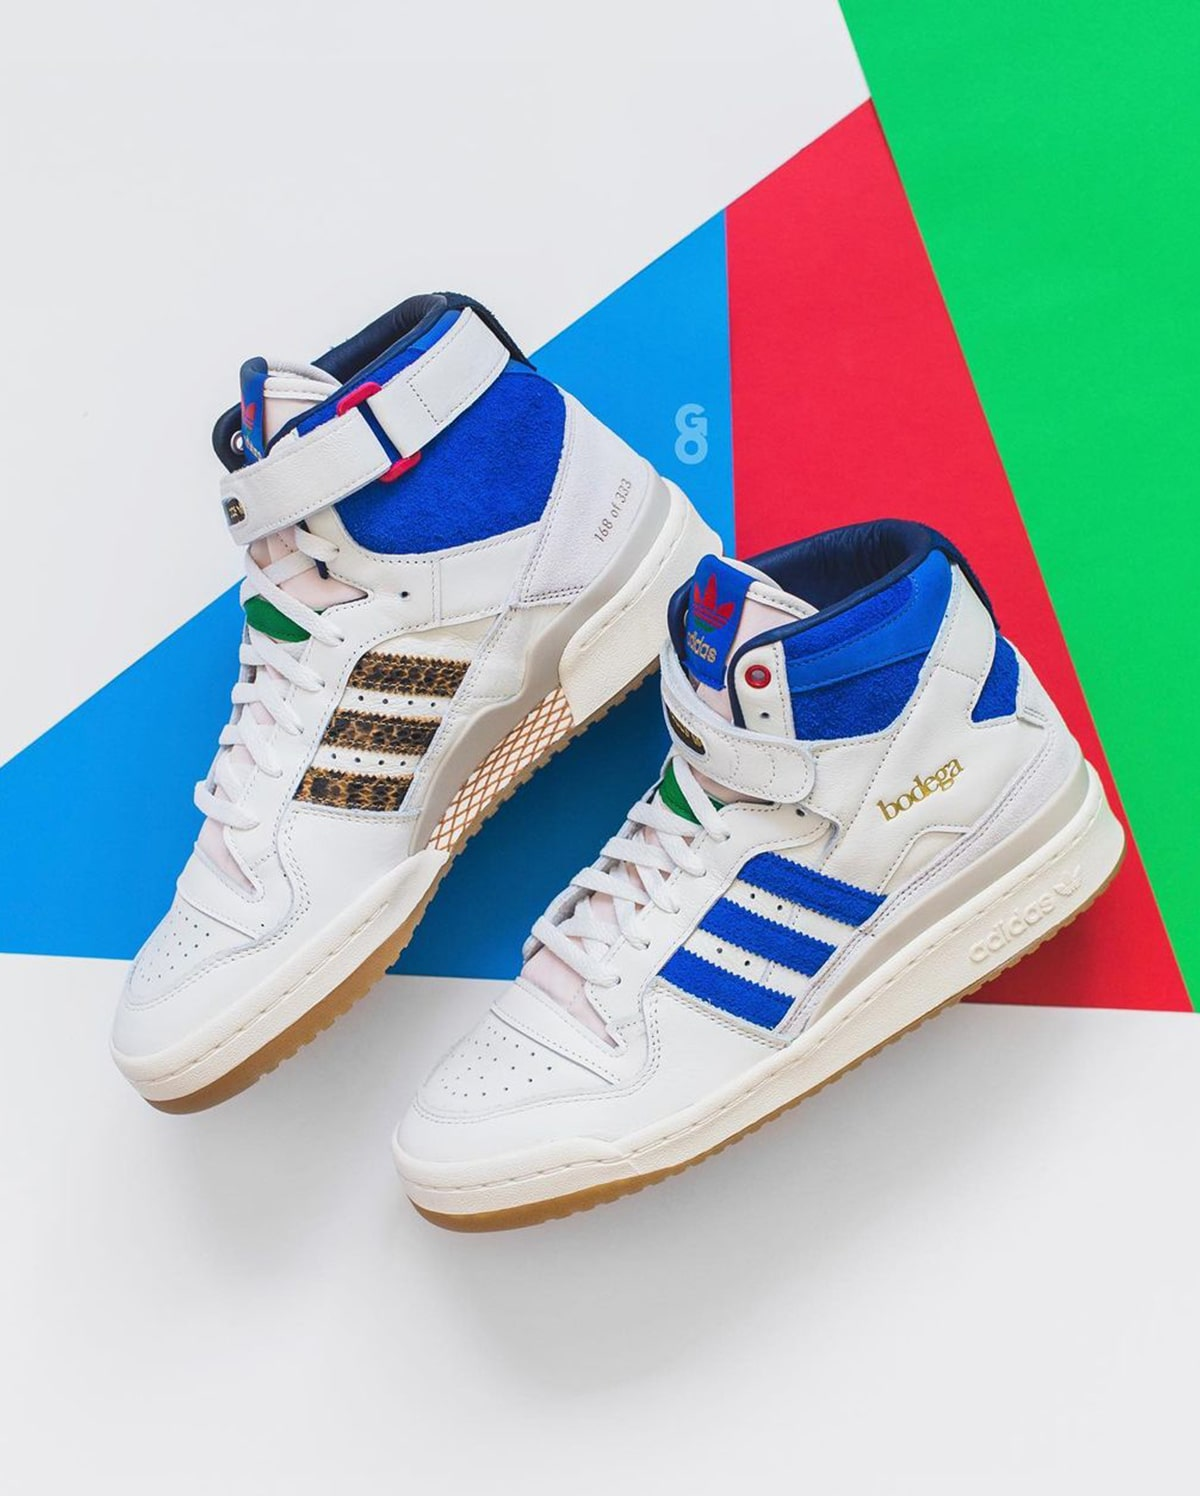 Bodega x adidas Forum Hi F&F is Limited to Just 333 Pairs